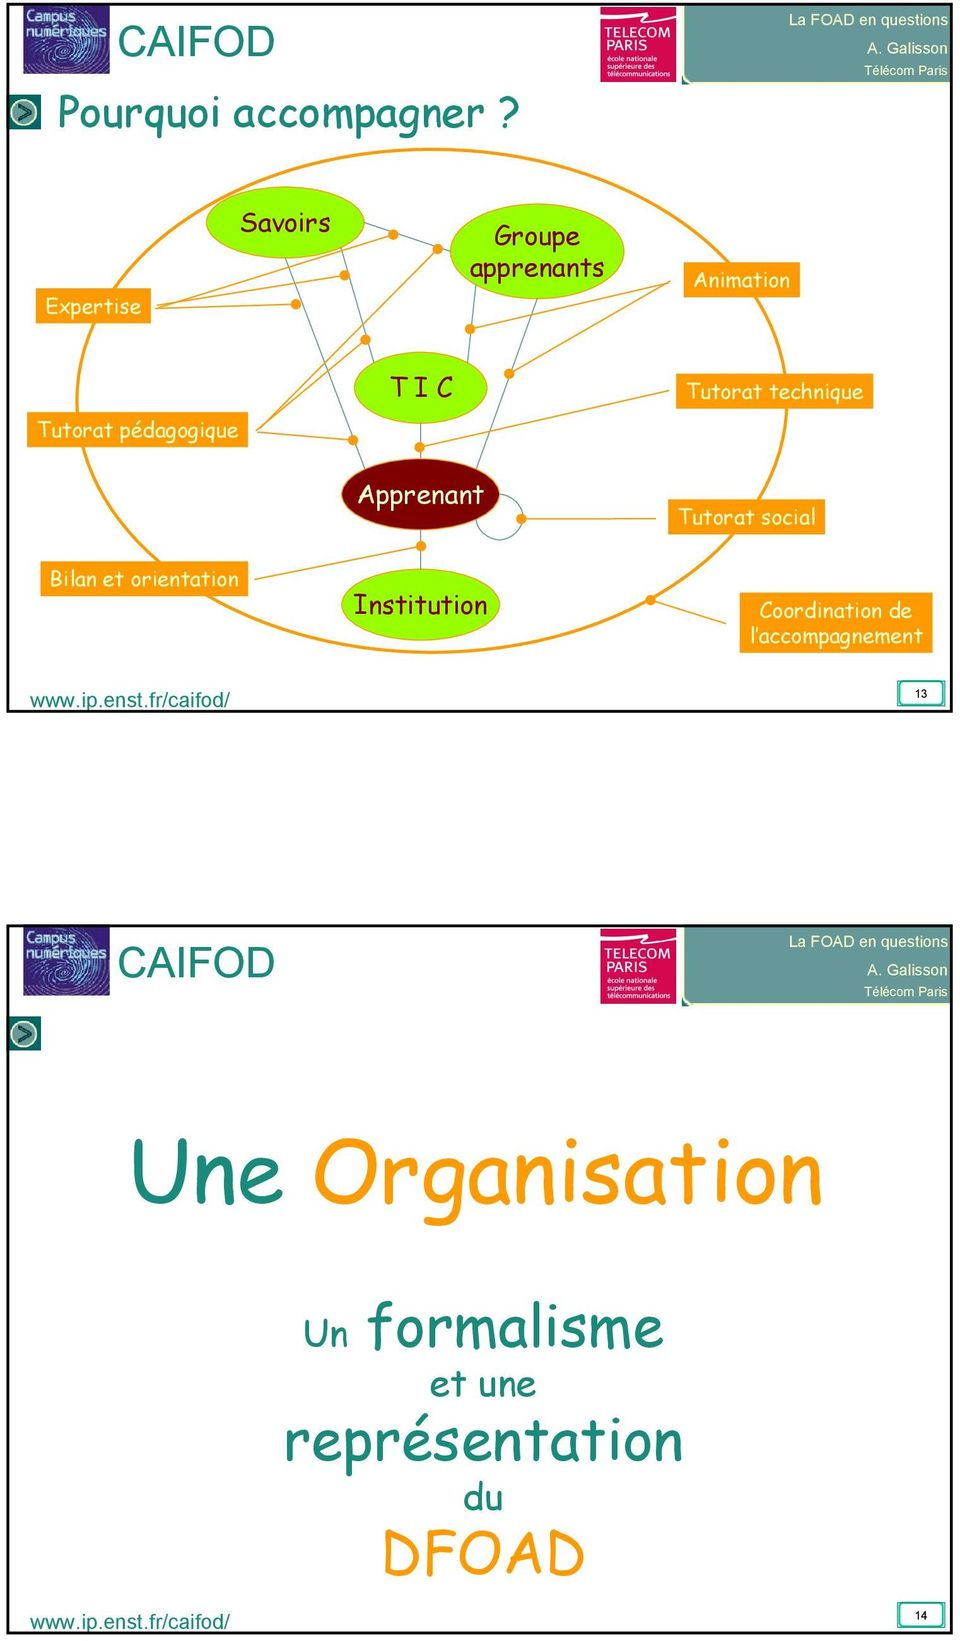 I C Tutorat technique Apprenant Tutorat social Bilan et orientation